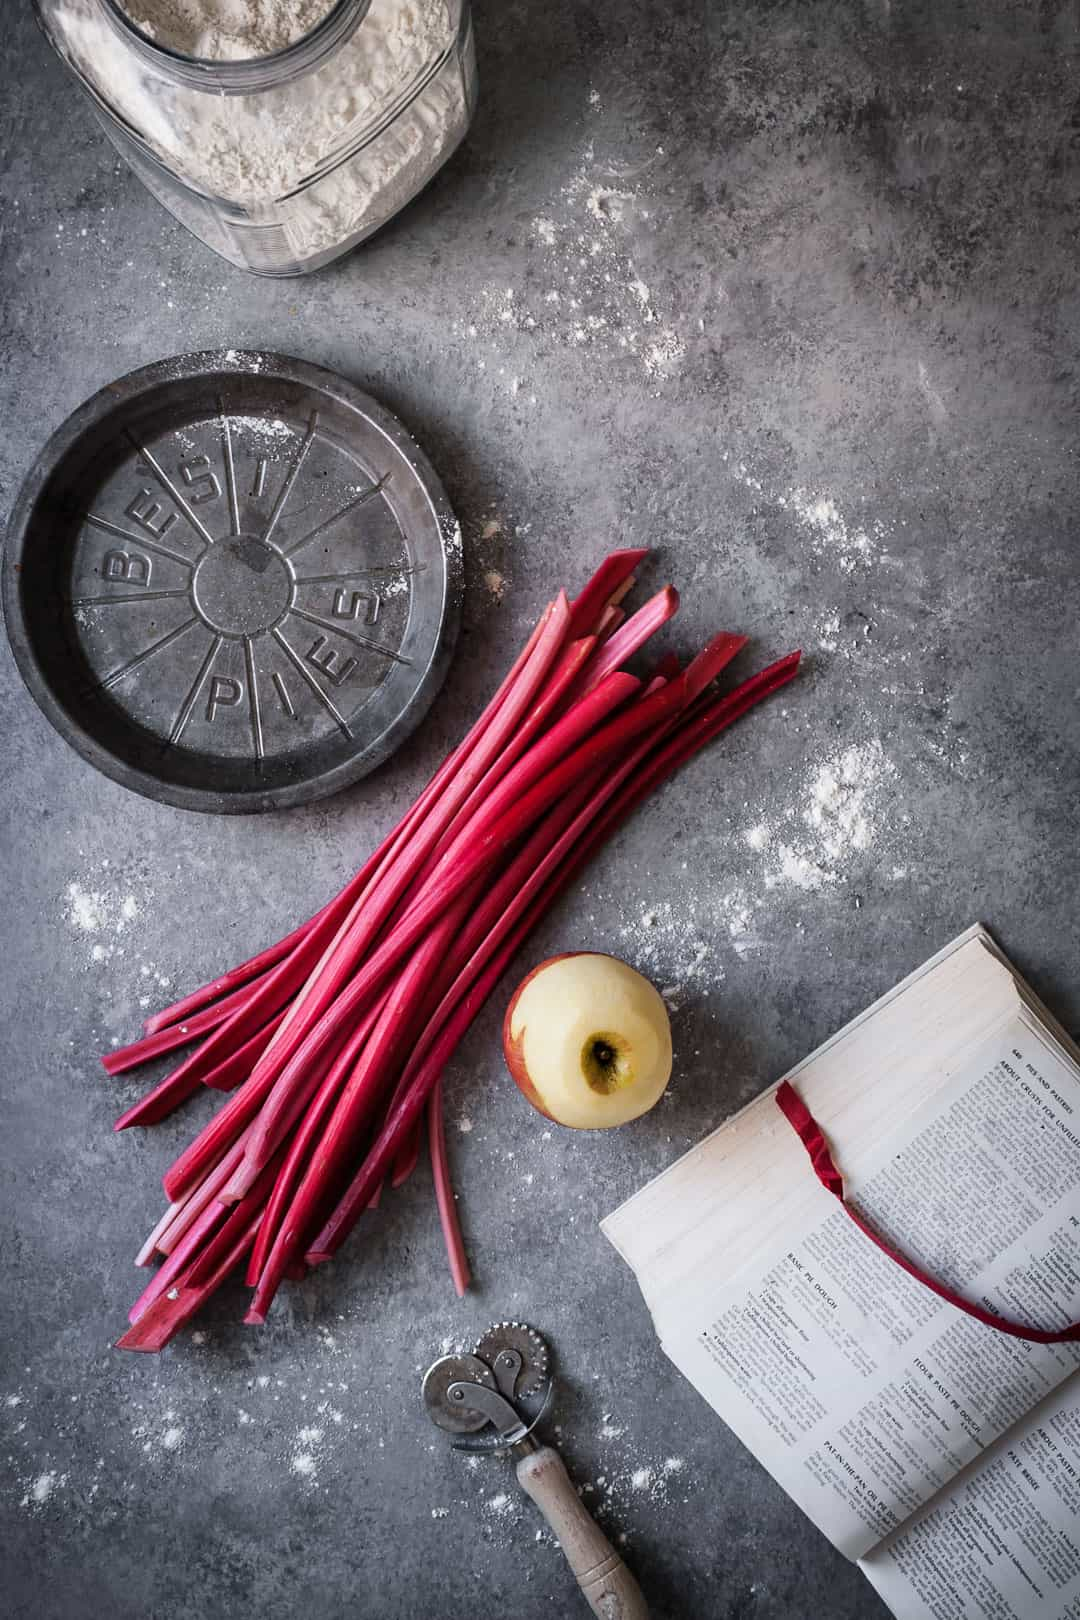 making a rhubarb apple pie with ginger and lemongrass: top view of rhubarb stalks and peeled apple on grey surface with opened cookbook, metal pie tin and flour container nearby